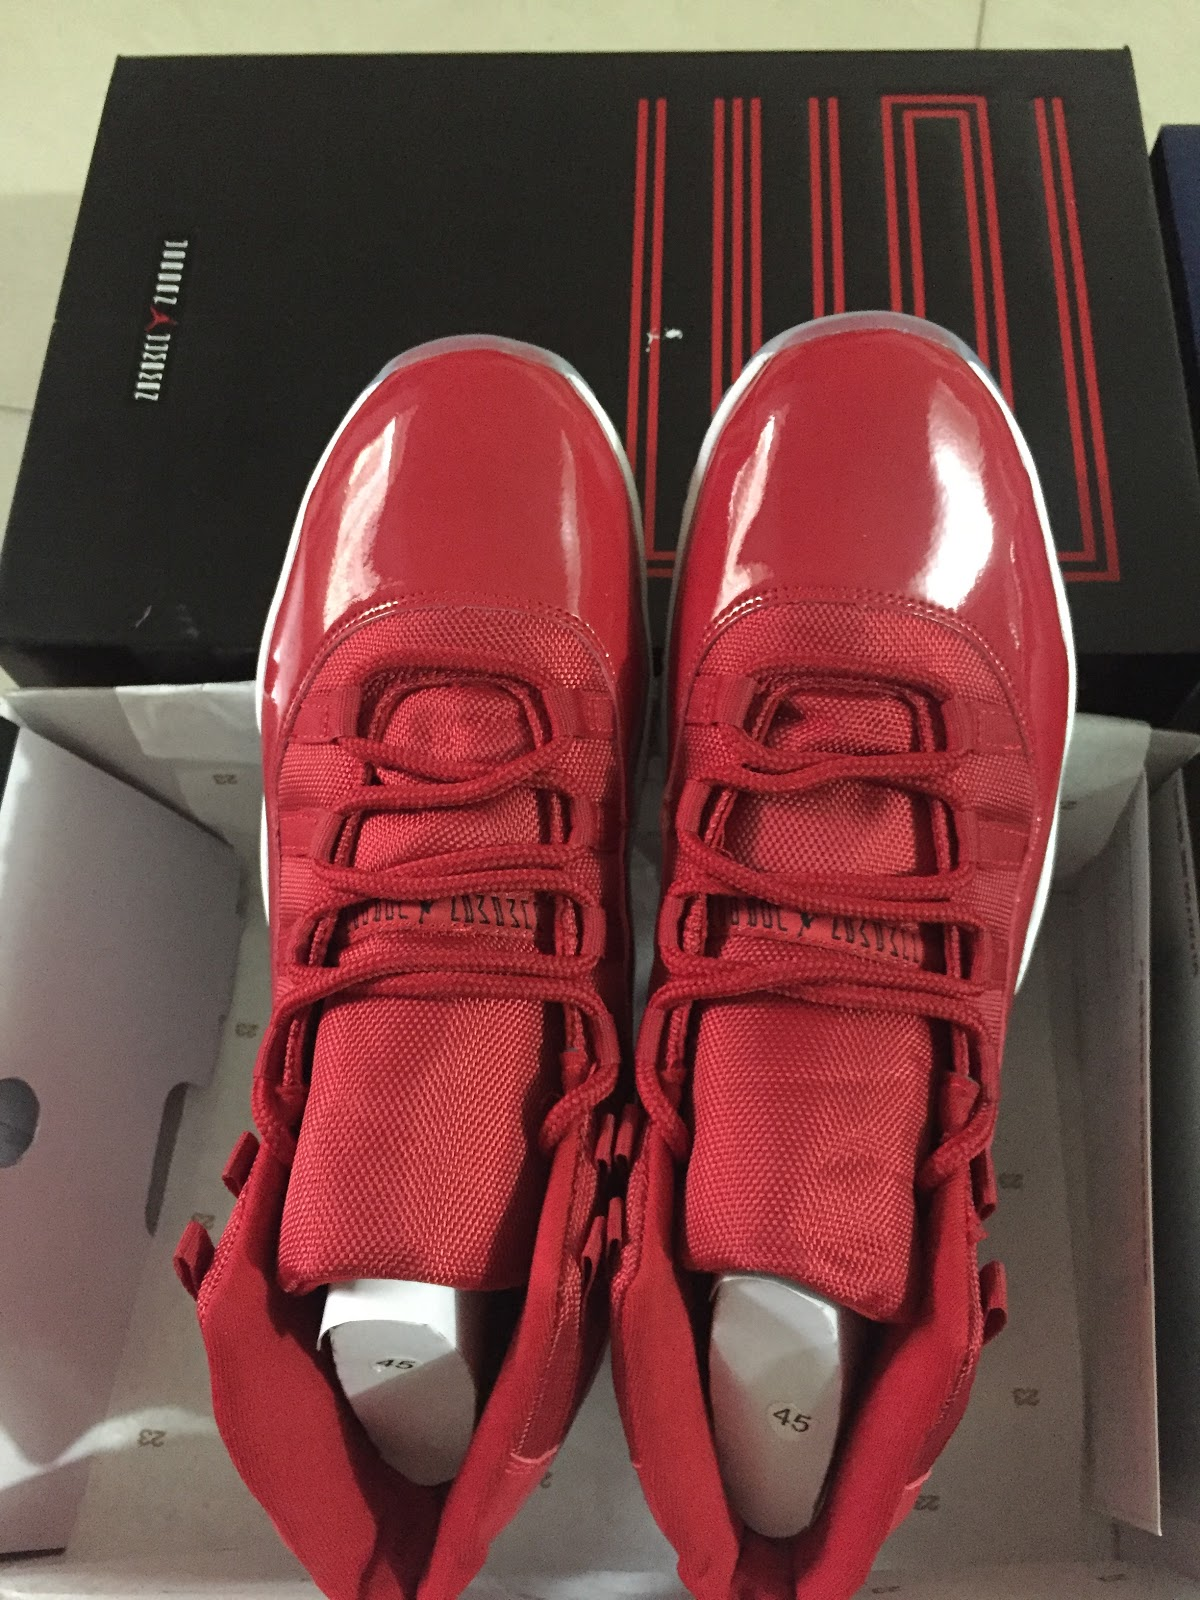 best authentic 6ed40 676f5 ... year to Michael Jordan s brilliant record in 1996 as the theme, all red  patent leather with red collar, tongue, whether it is static or on the  Feet, ...